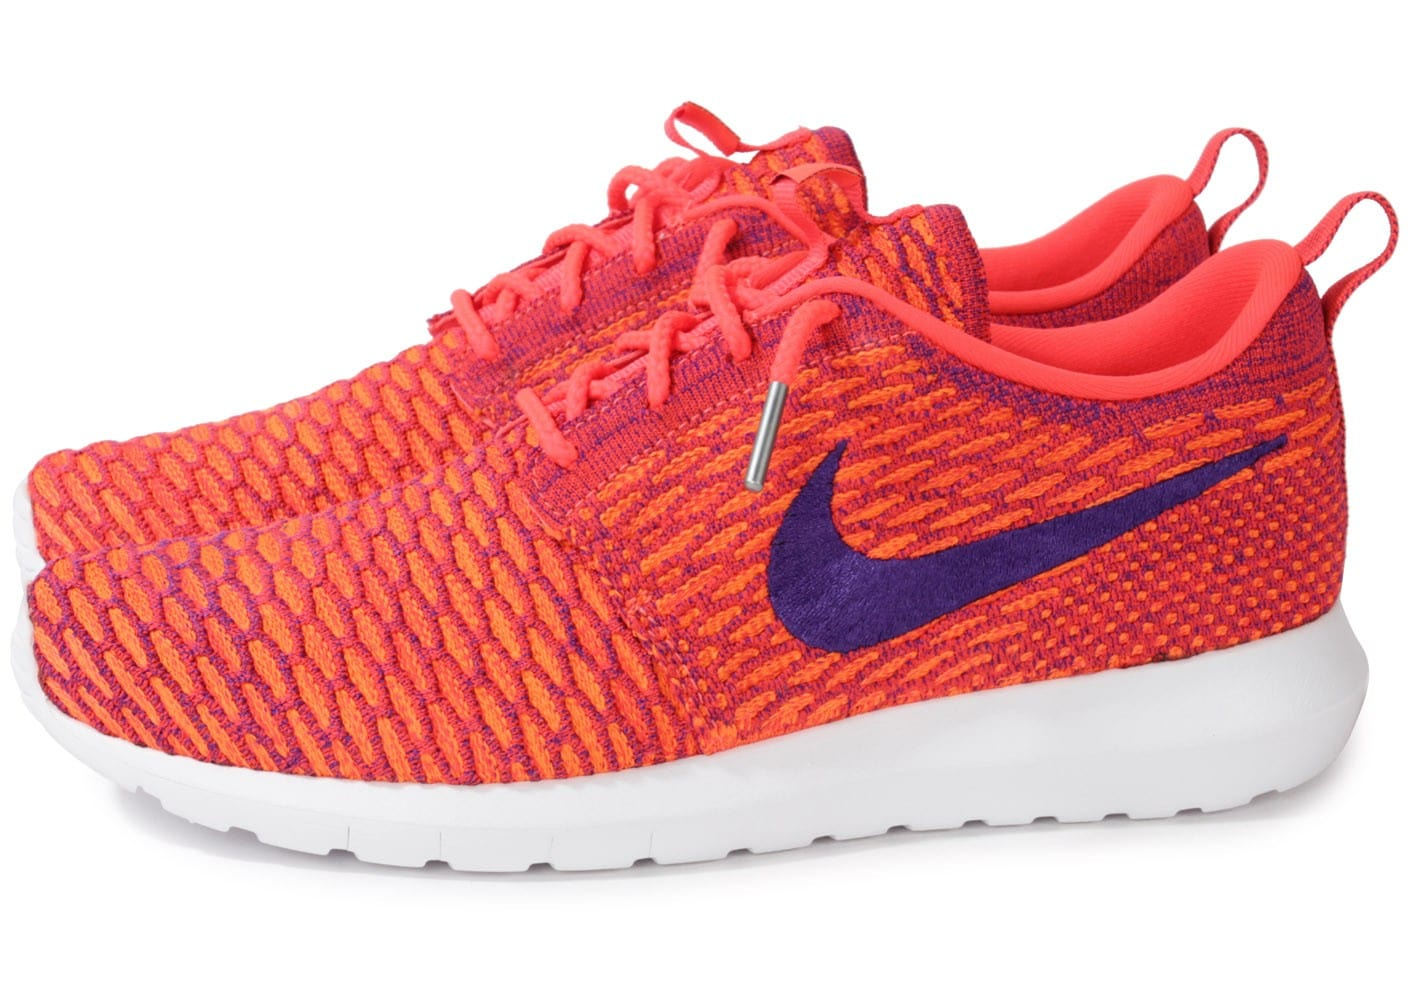 lgdwc Cliquez pour zoomer Chaussures Nike ROSHE RUN FLYKNIT BRIGHT CRIMSON vue